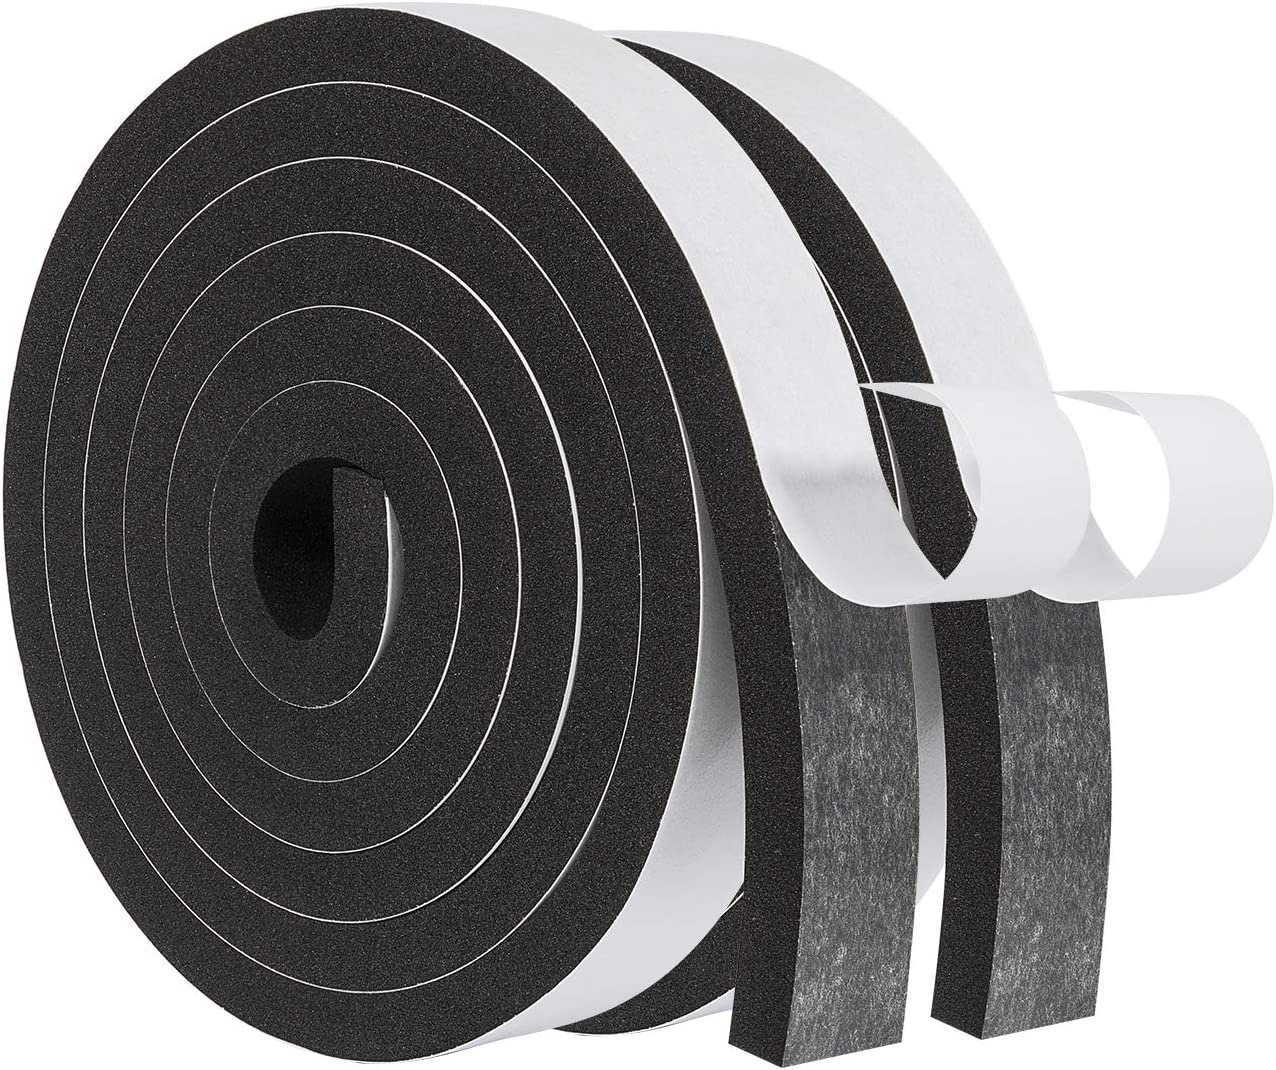 1 Inch Wide X 1//8 Inch Thick fowong High Density Foam Tape Total 30 Feet Window Insulation Air Conditioner Weather Stripping Closed Cell Adhesive Foam Padding Tape 15 Ft X 2 Rolls 2 Rolls